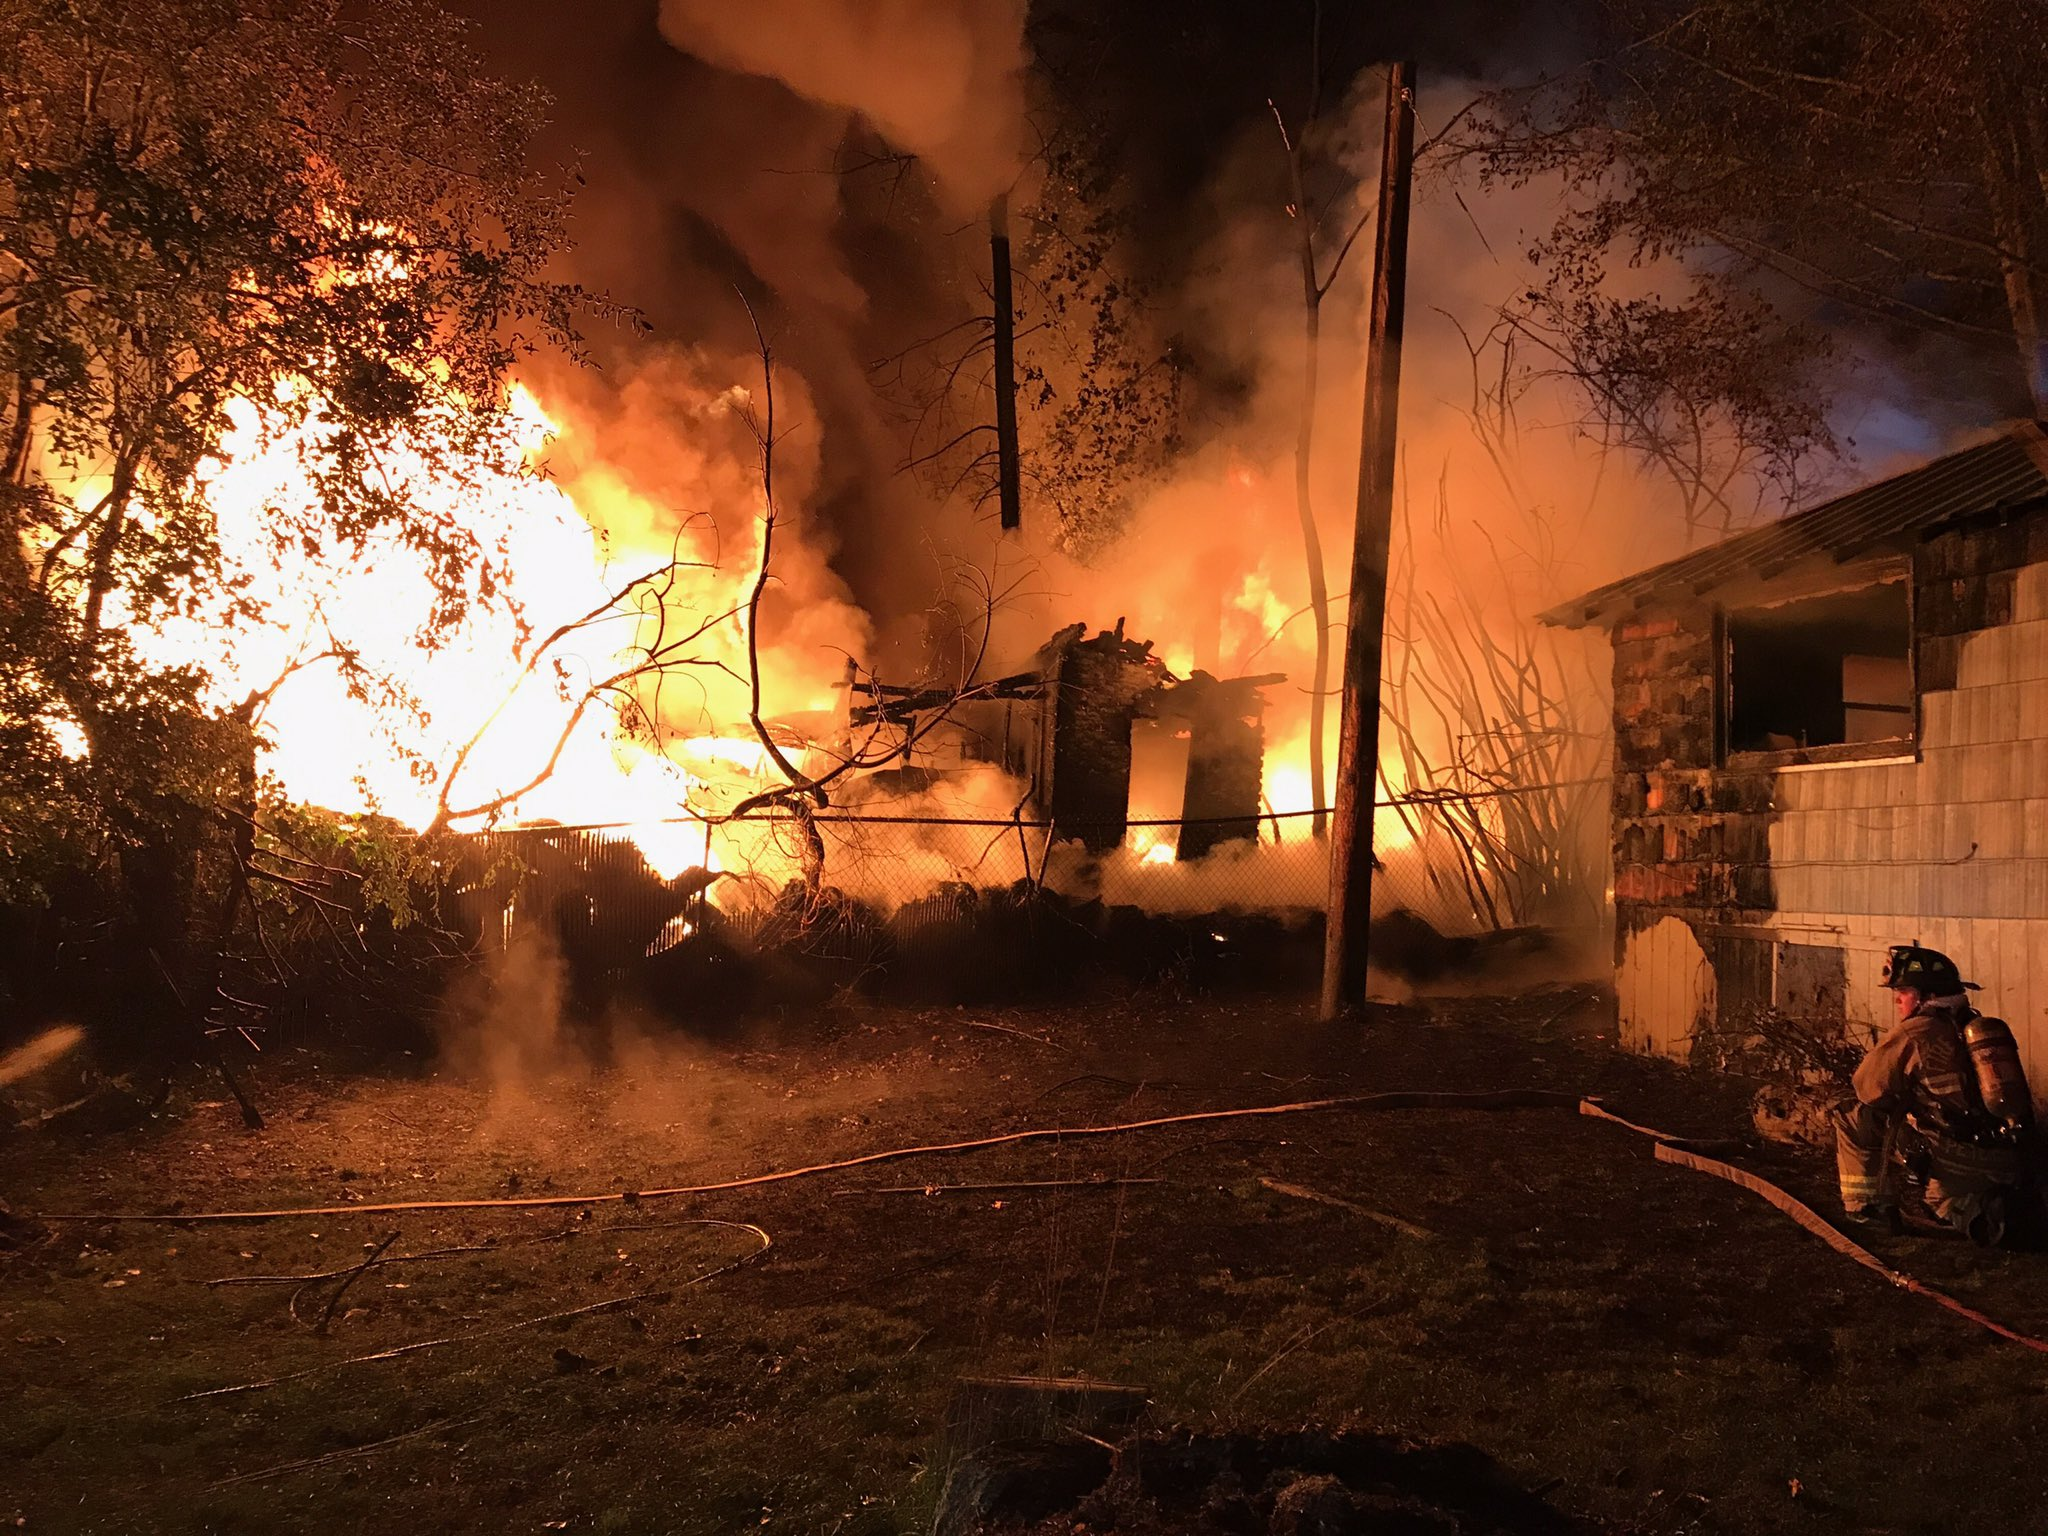 Crews arrived to the scene at about 3:30 a.m. Monday to try to fight a fire burning a tire store and a home along Hwy 99 near Mukilteo Speedway. (Photo credit: South Snohomish Fire)<p></p>